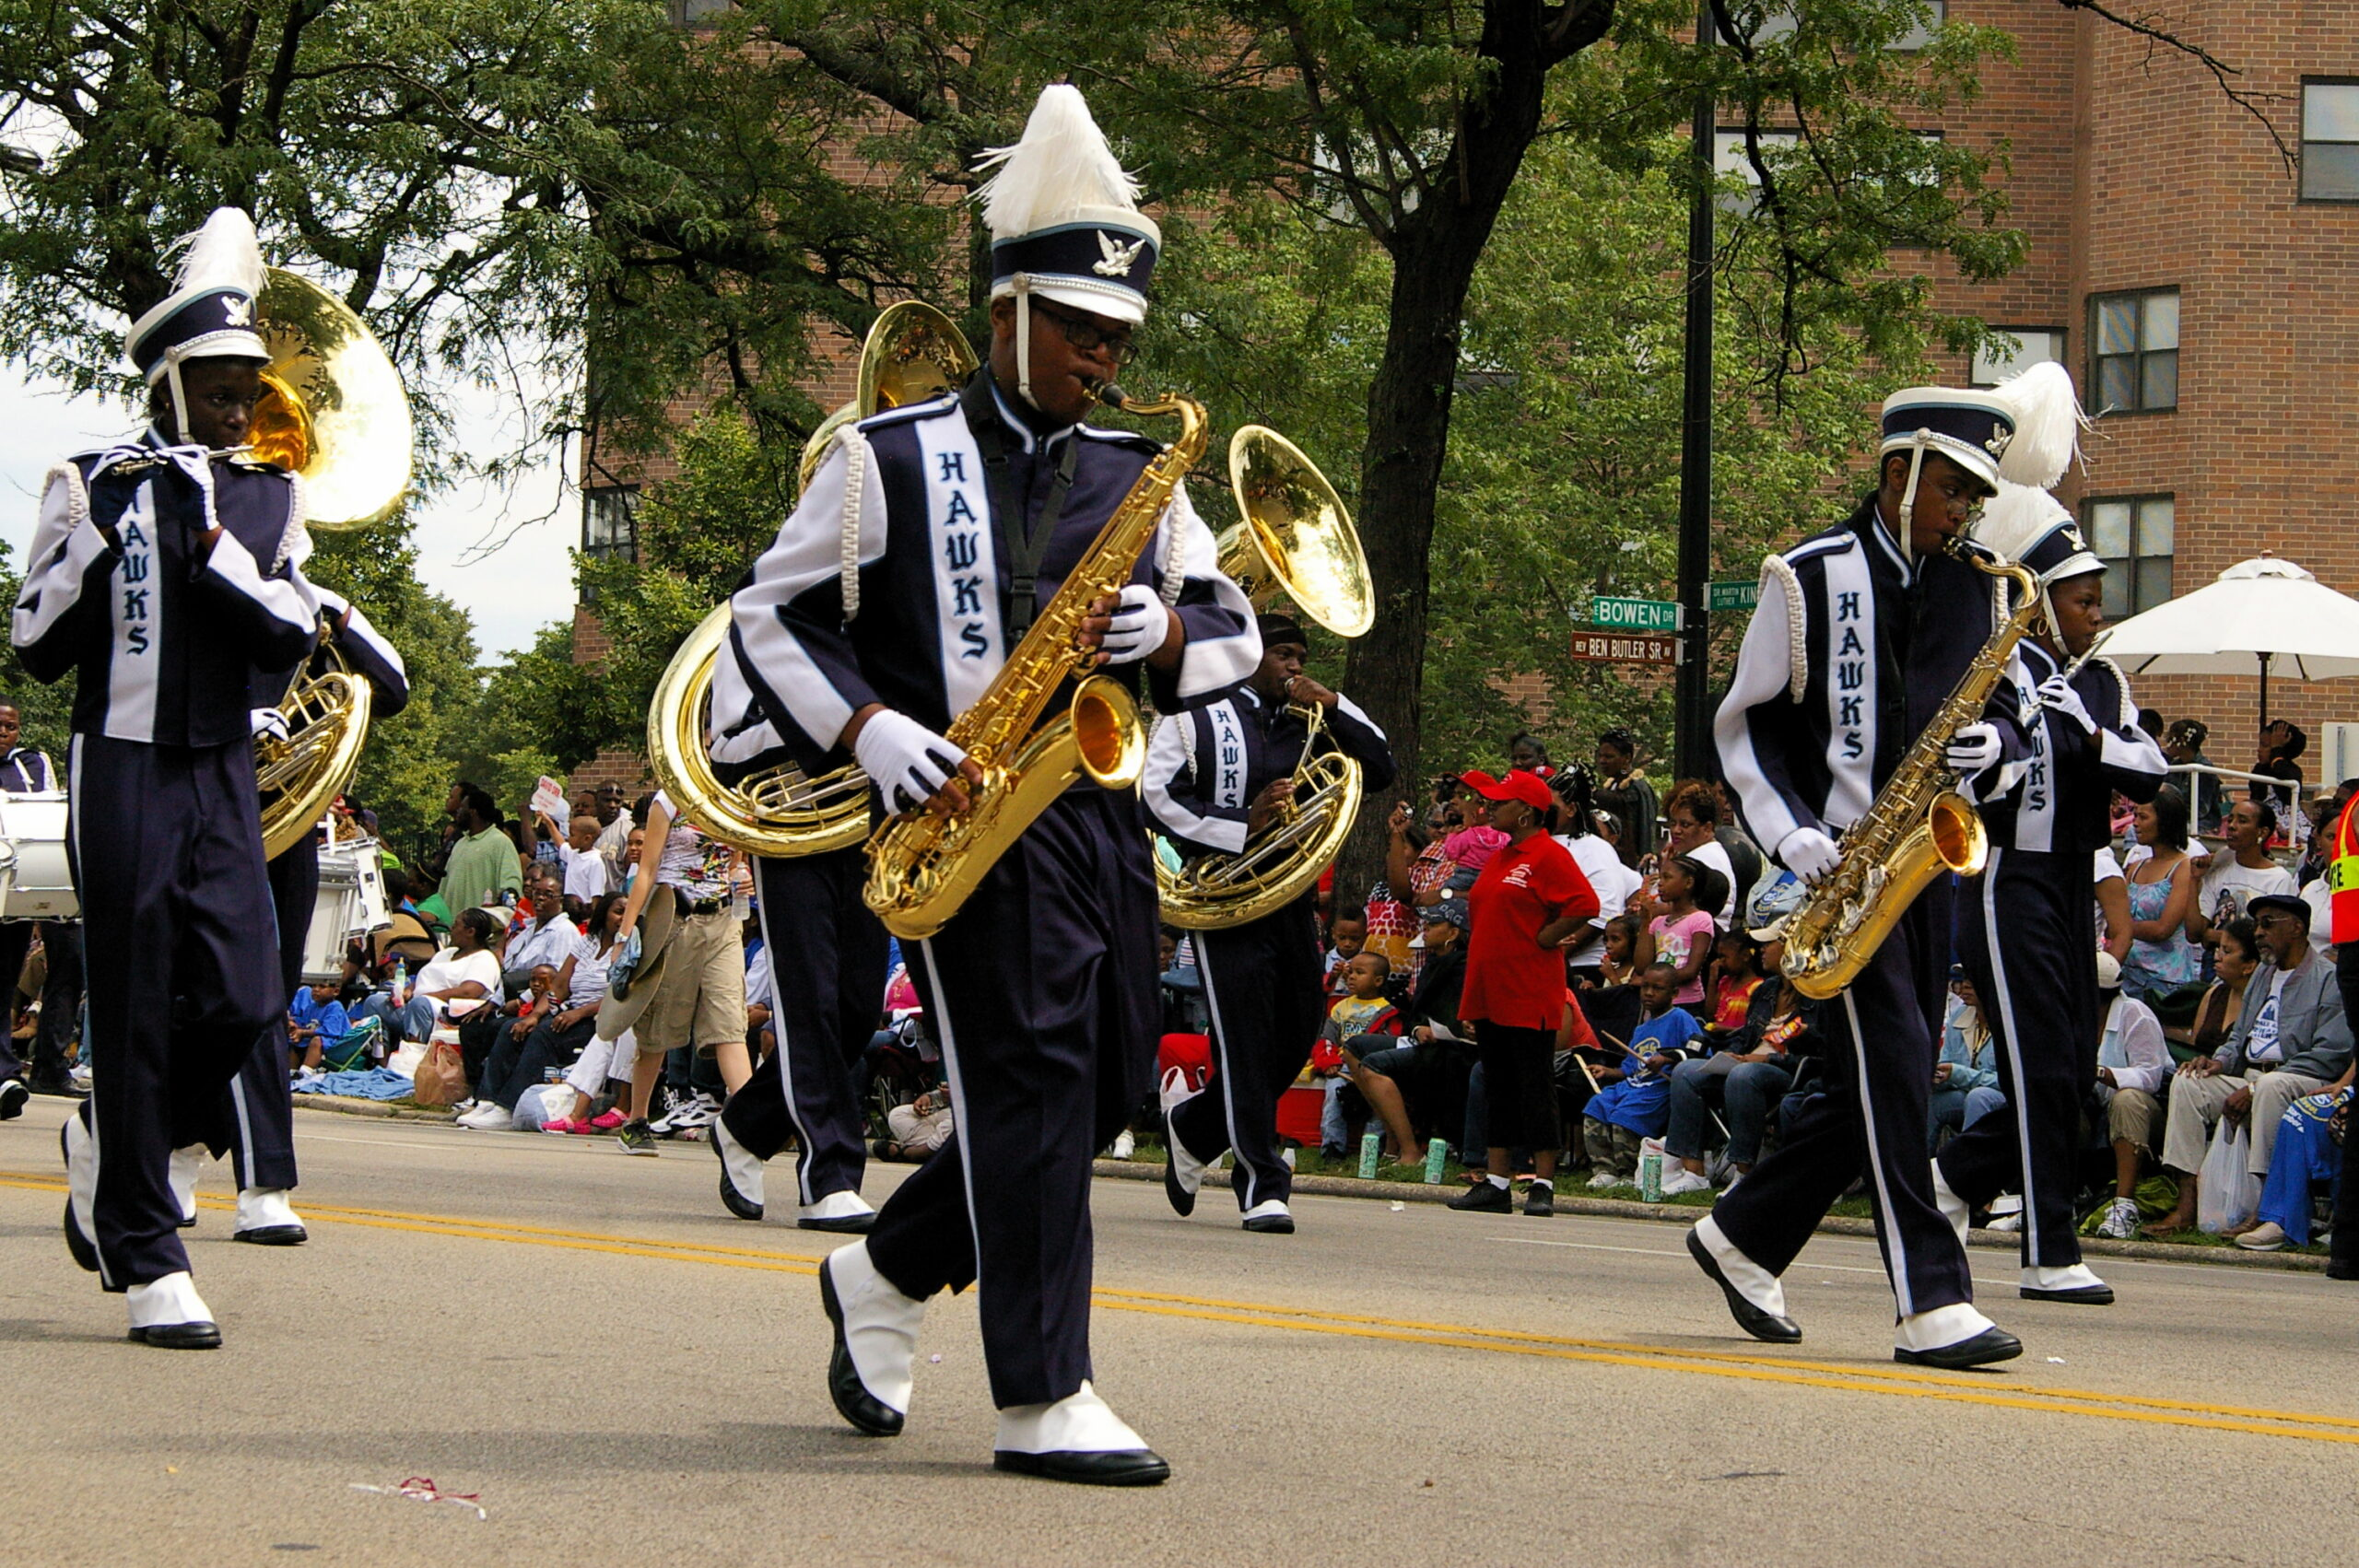 High School marching band in Chicago's 2008 Bud Billiken Parade. (Curtis Morrow, CC BY 2.0, Wikimedia Commons)